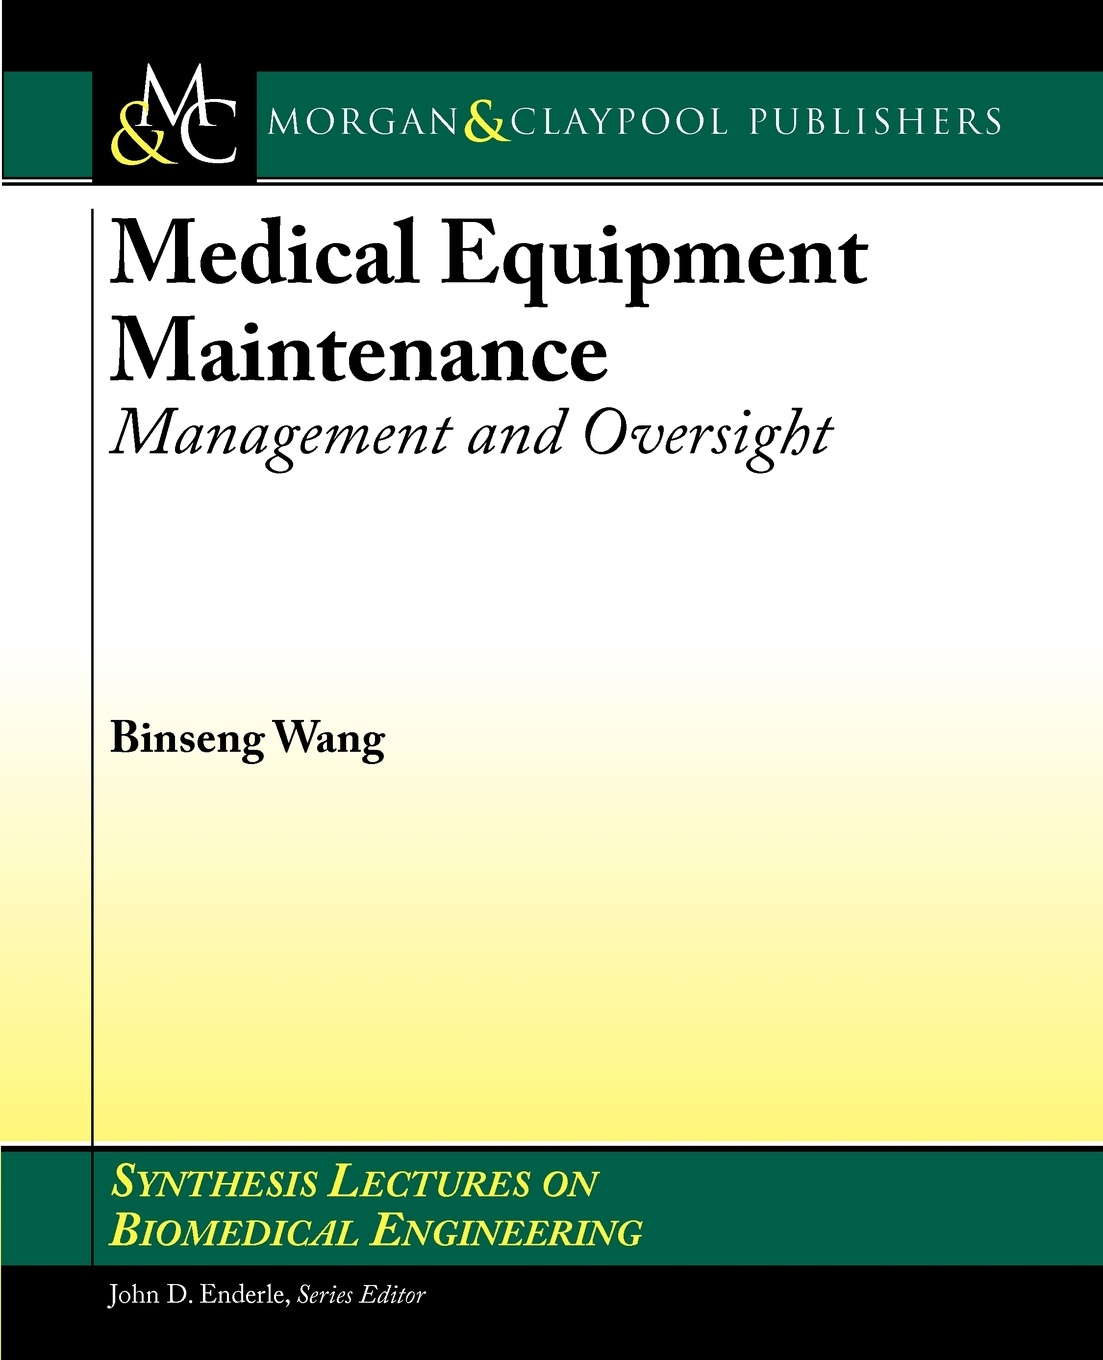 лучшая цена Binseng Wang Medical Equipment Maintenance. Management and Oversight